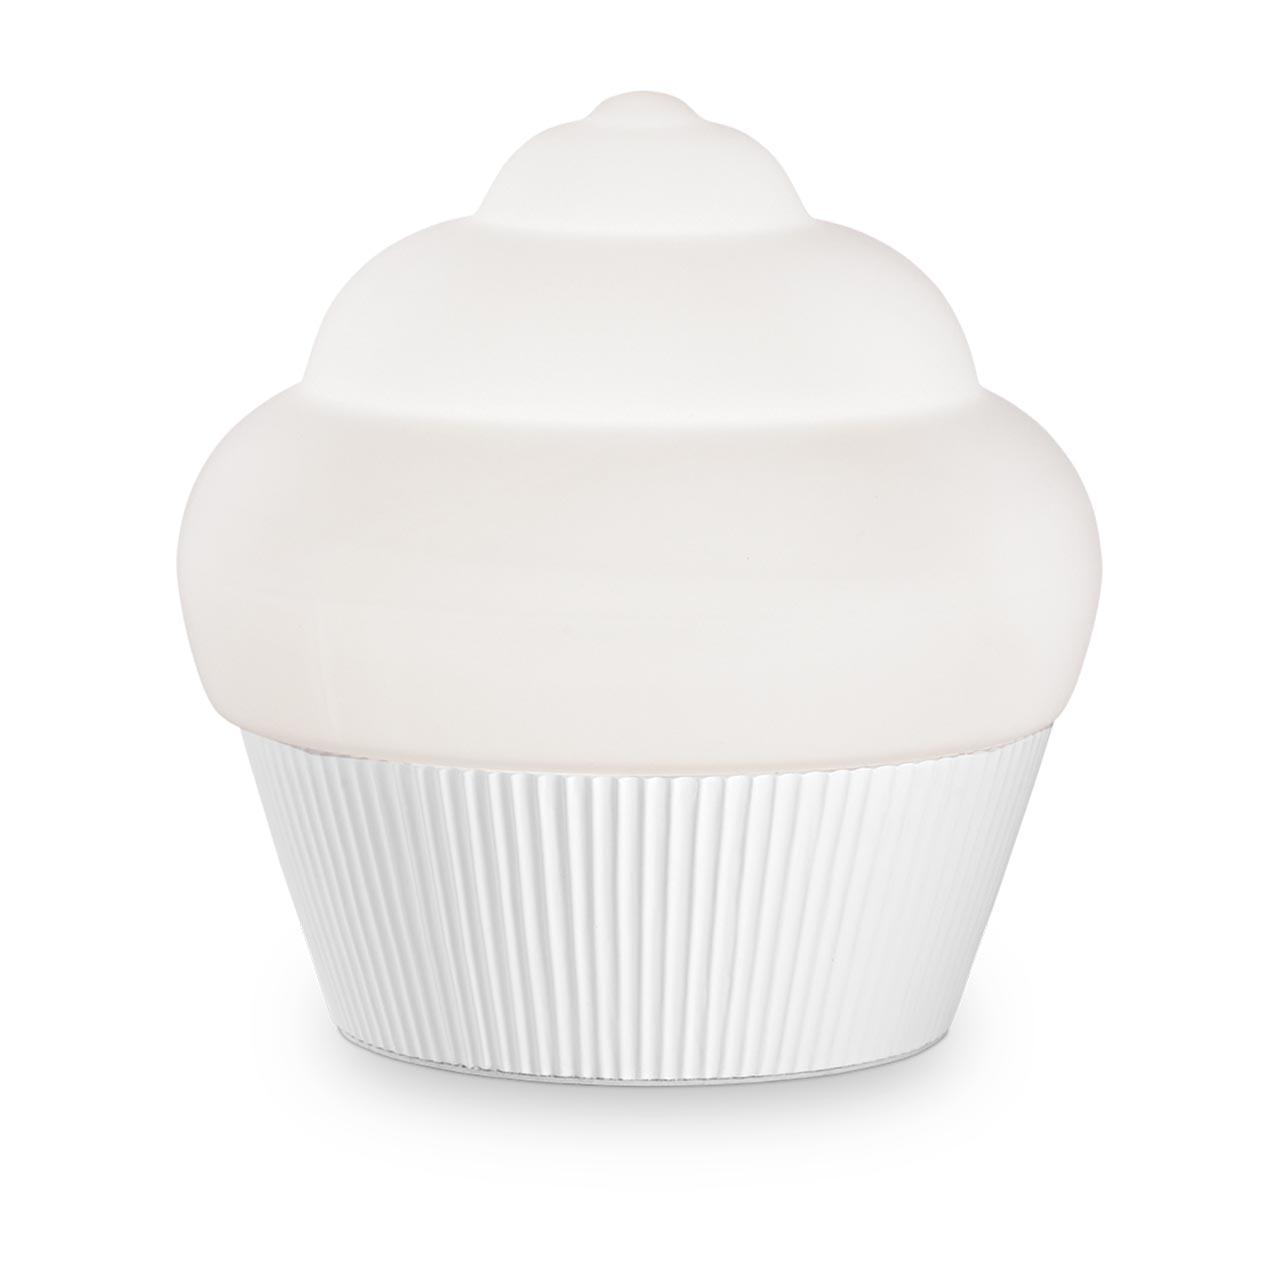 Настольная лампа Ideal Lux Cupcake TL1 Small Bianco